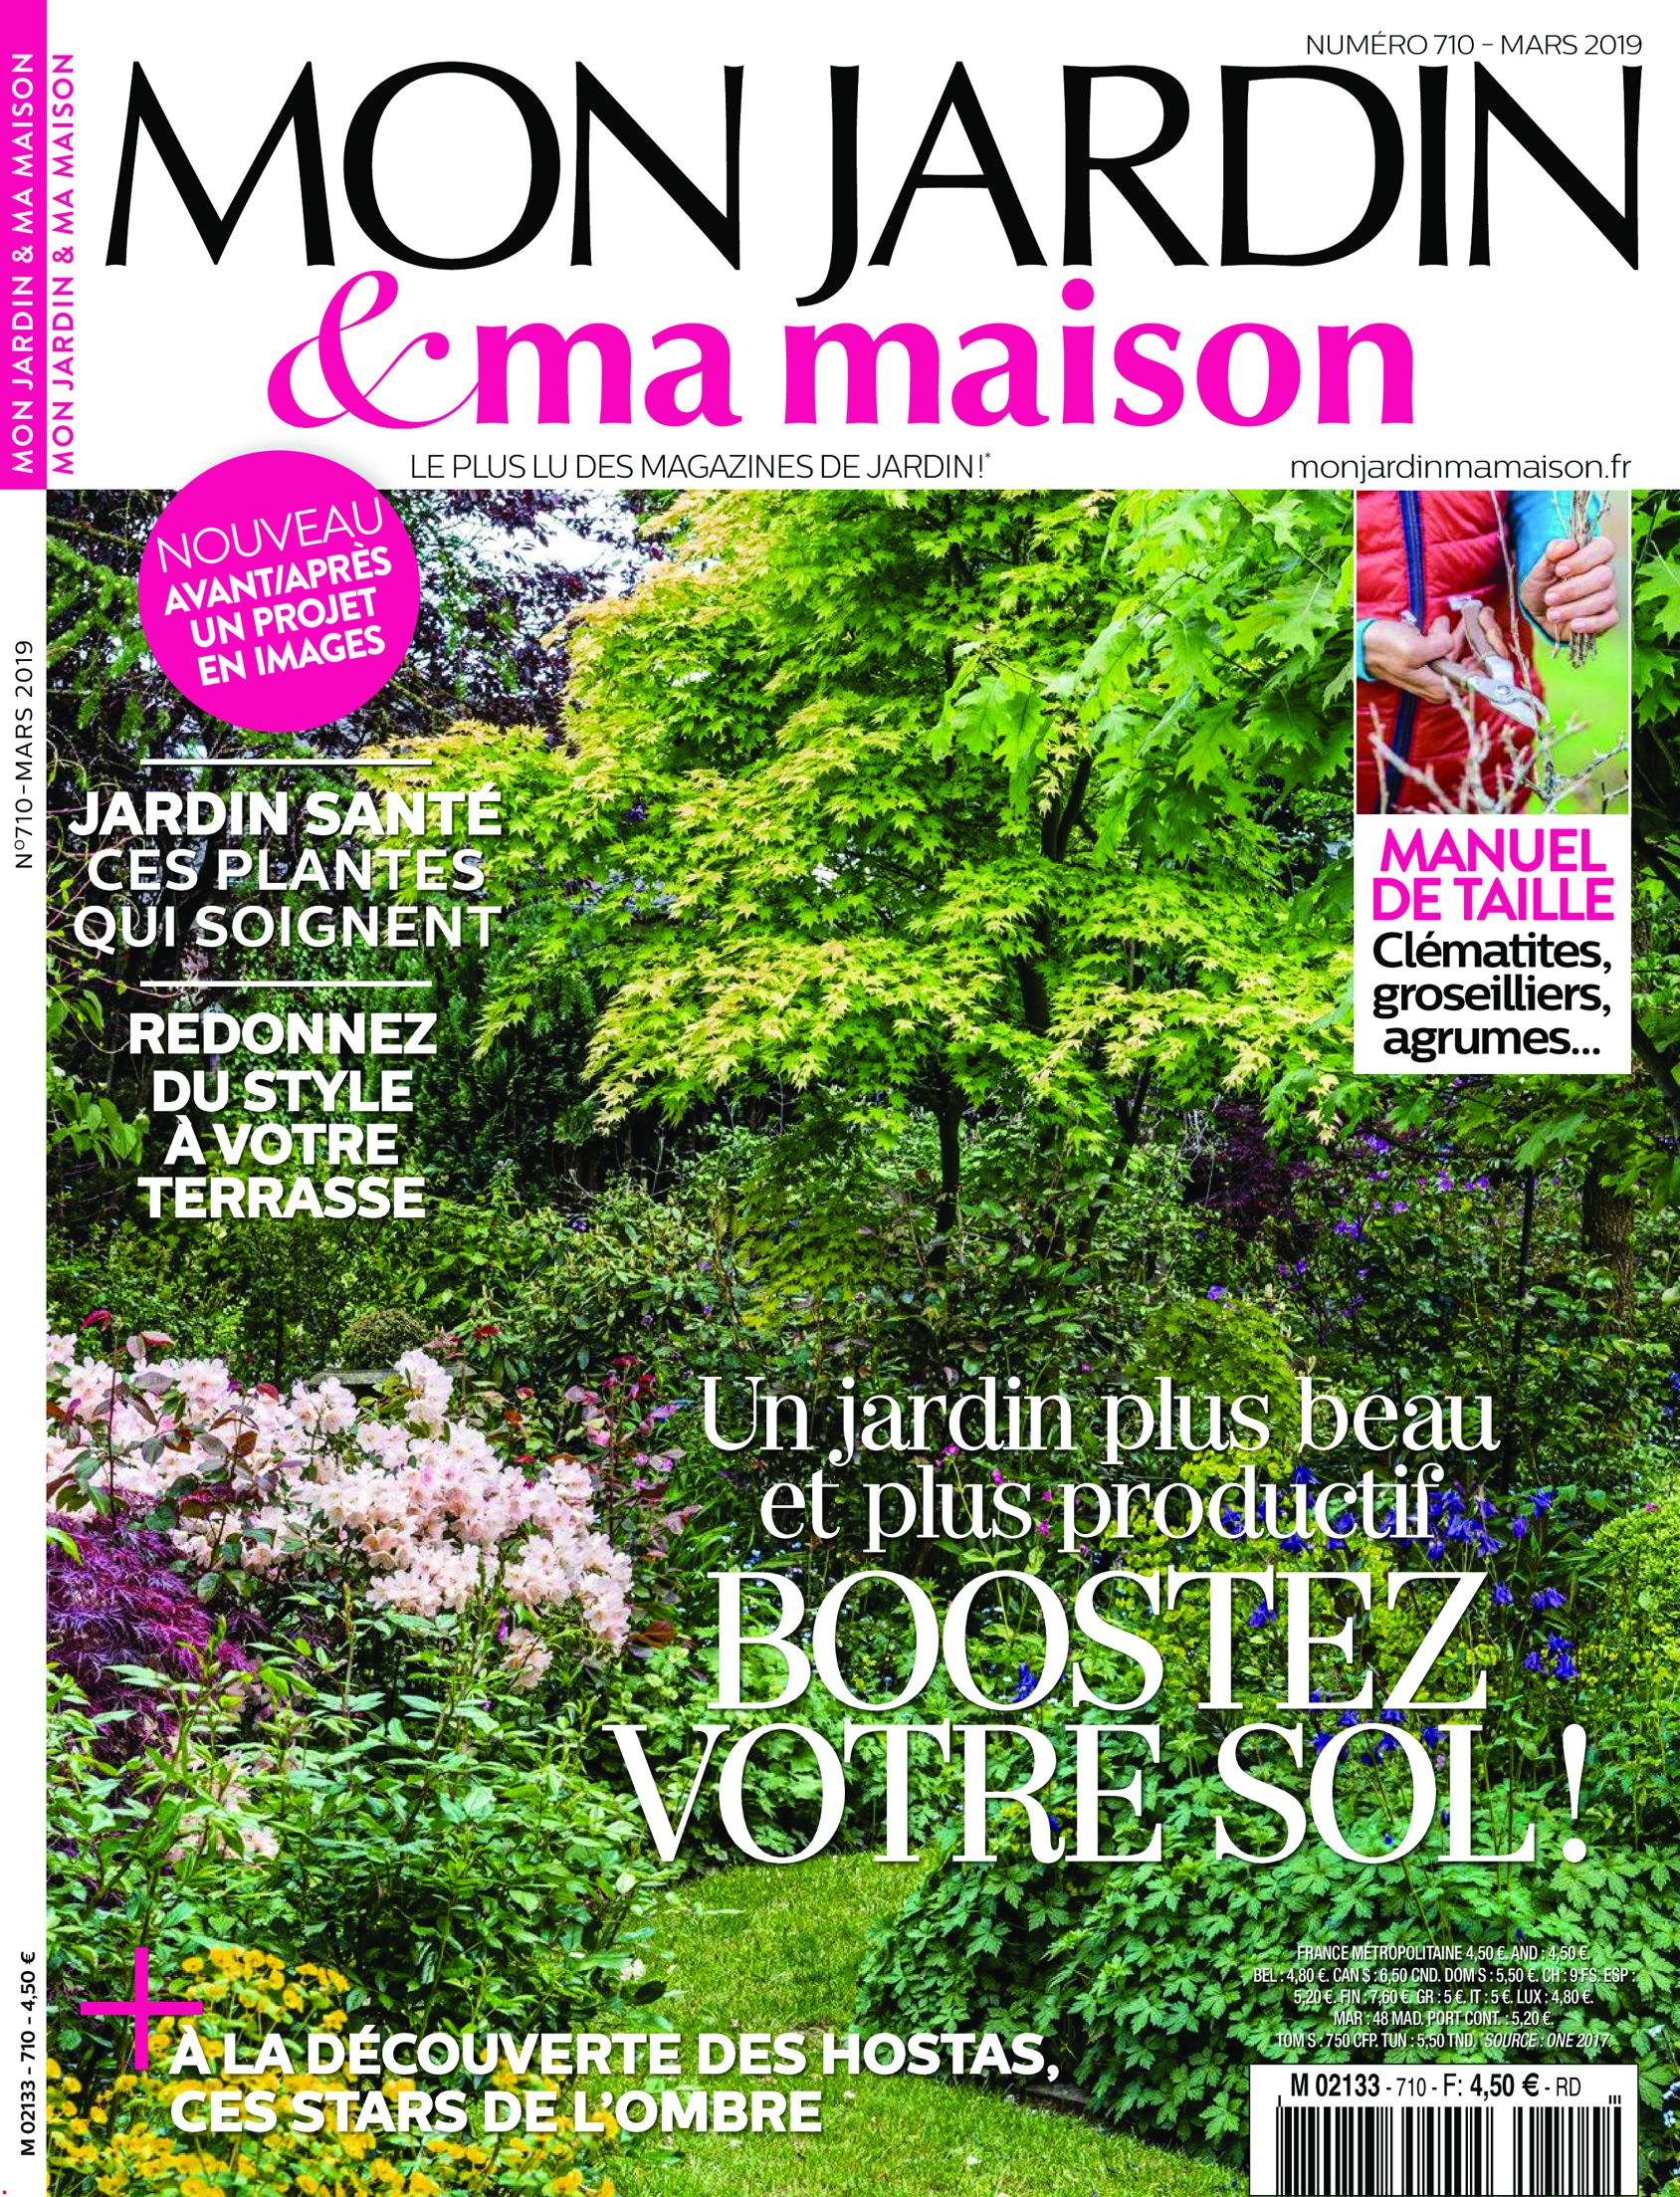 Garden And House And Interior Magazines Download Free » Page 7 intérieur Magazine Mon Jardin Et Ma Maison